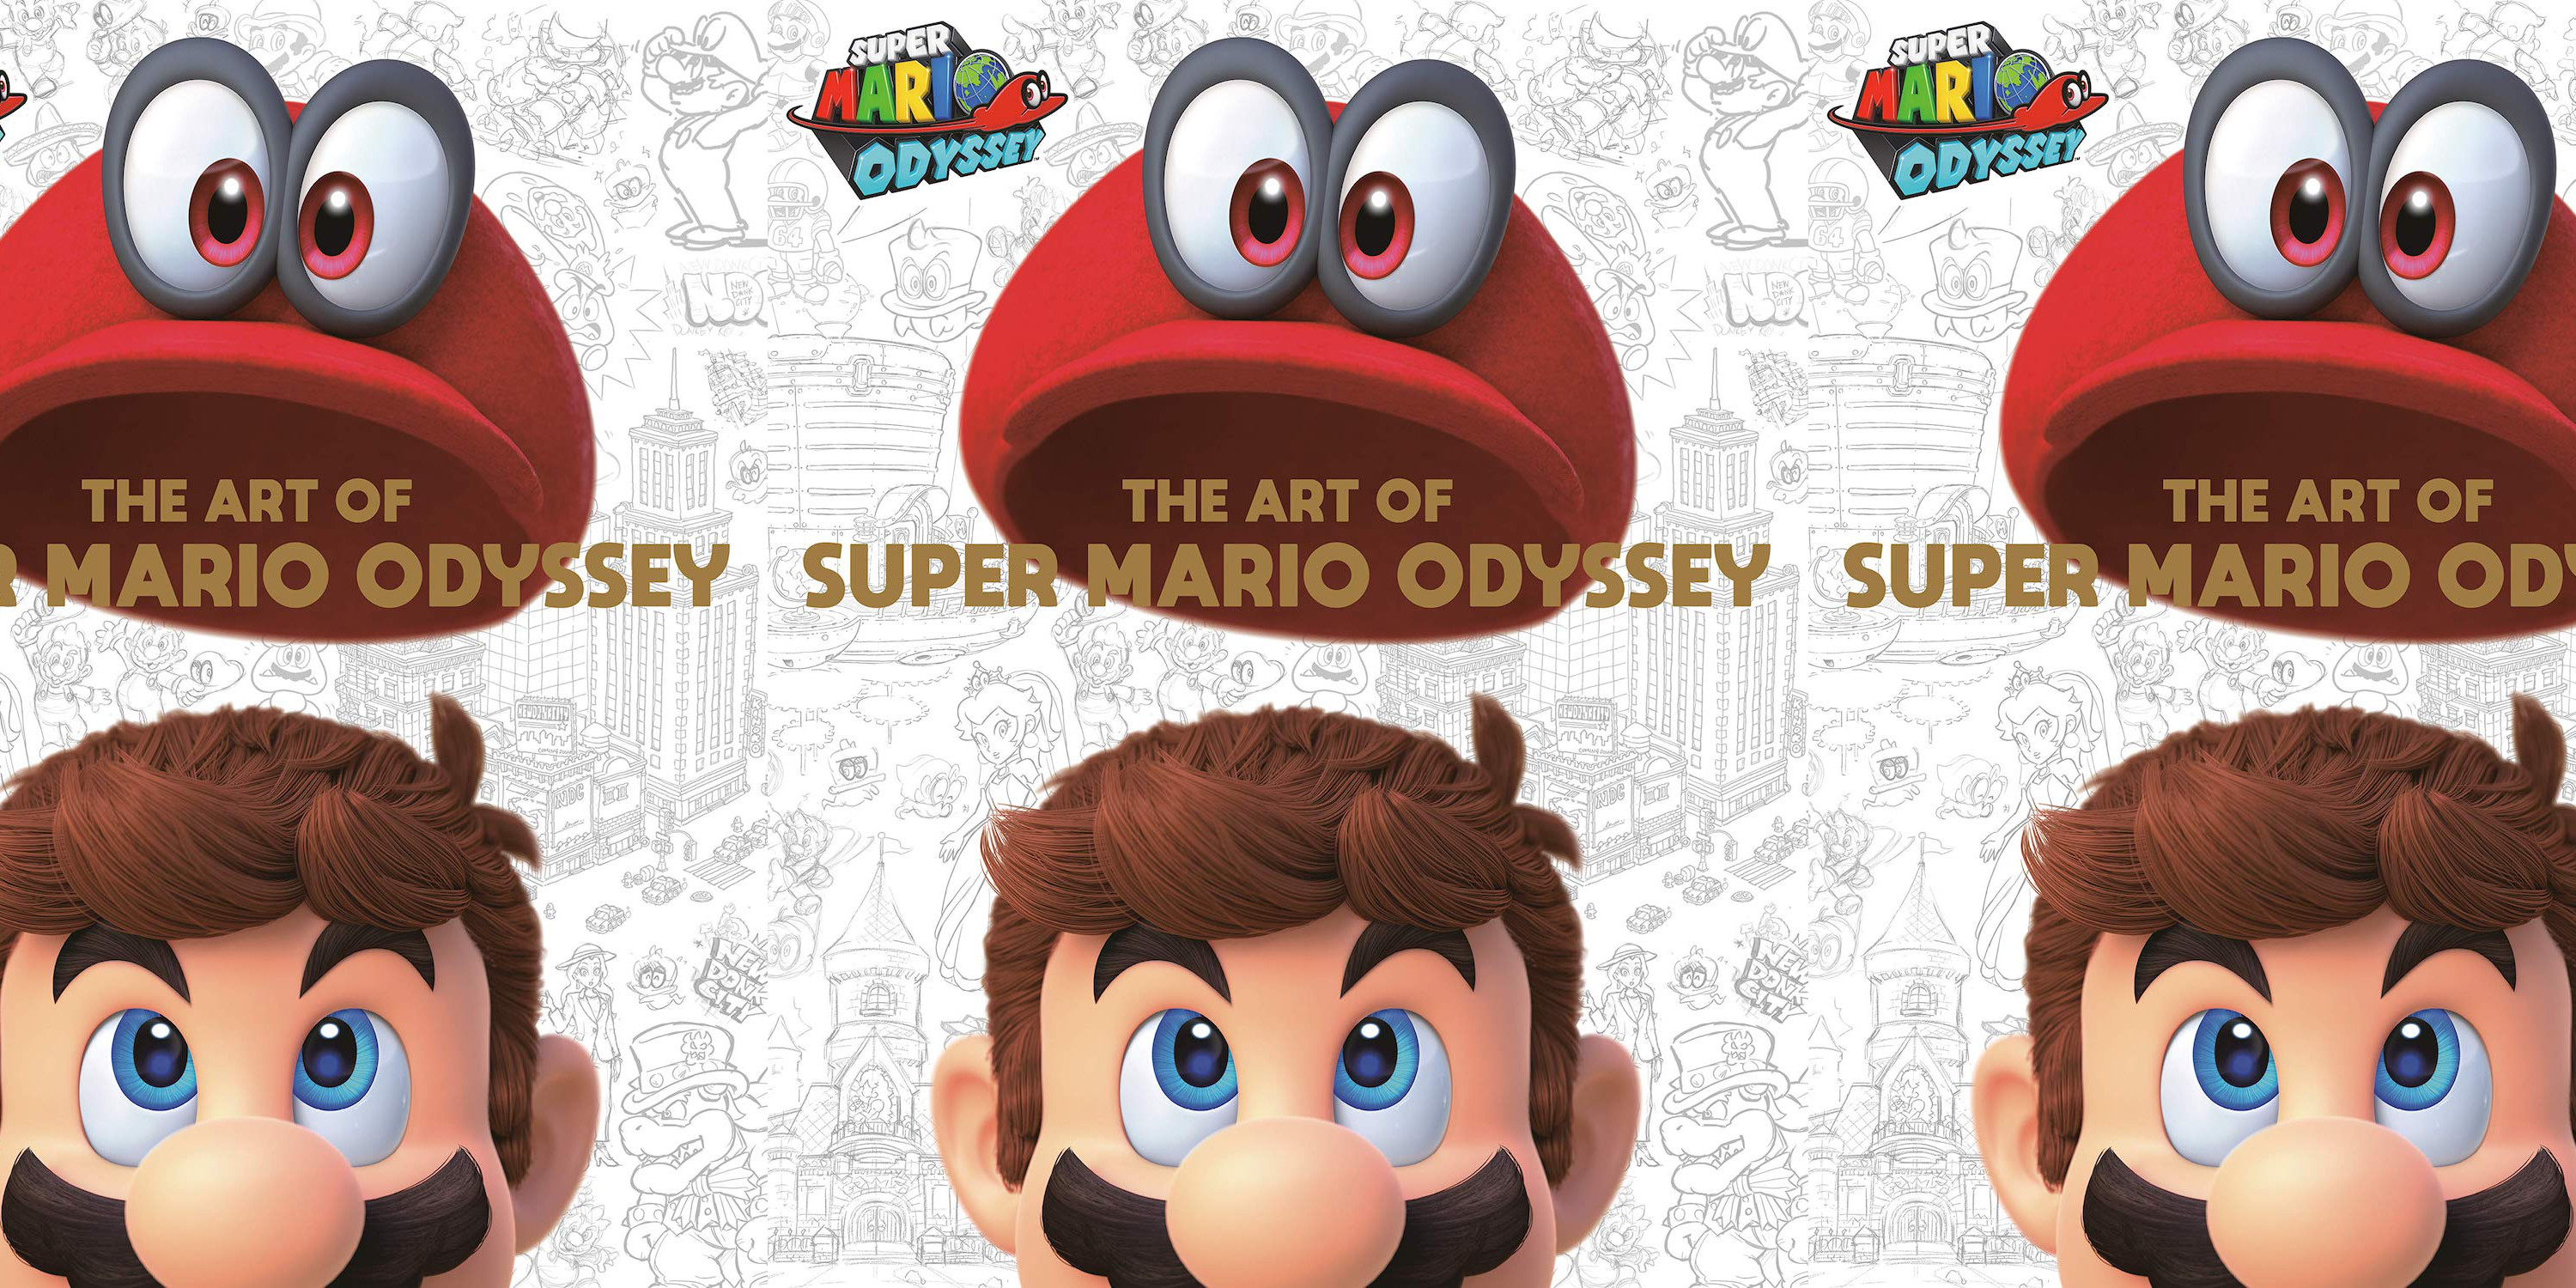 The Art of Super Mario Odyssey hardcover book is now down to $38 shipped (Pre-order, Reg. $50)